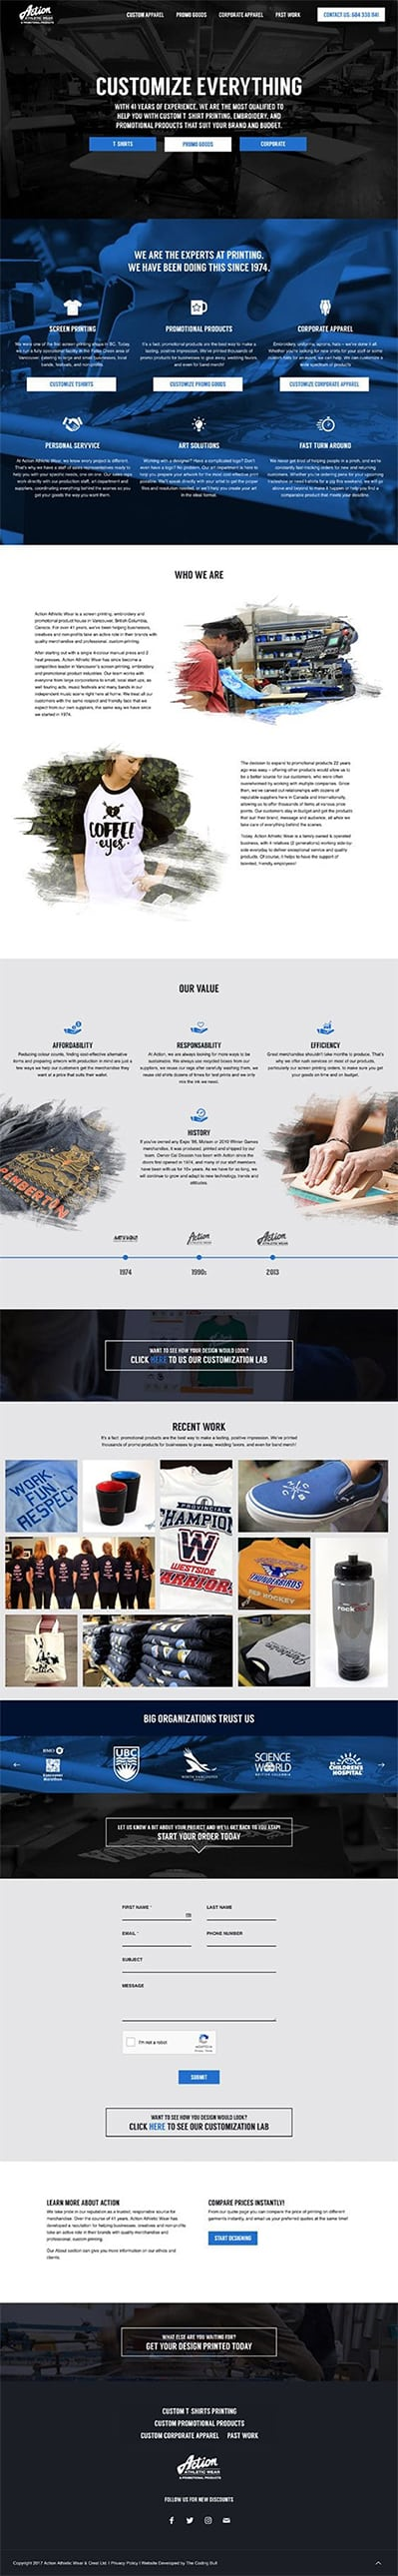 Action Athletic Wear Website design by Coding Bull - Highest rated web design company